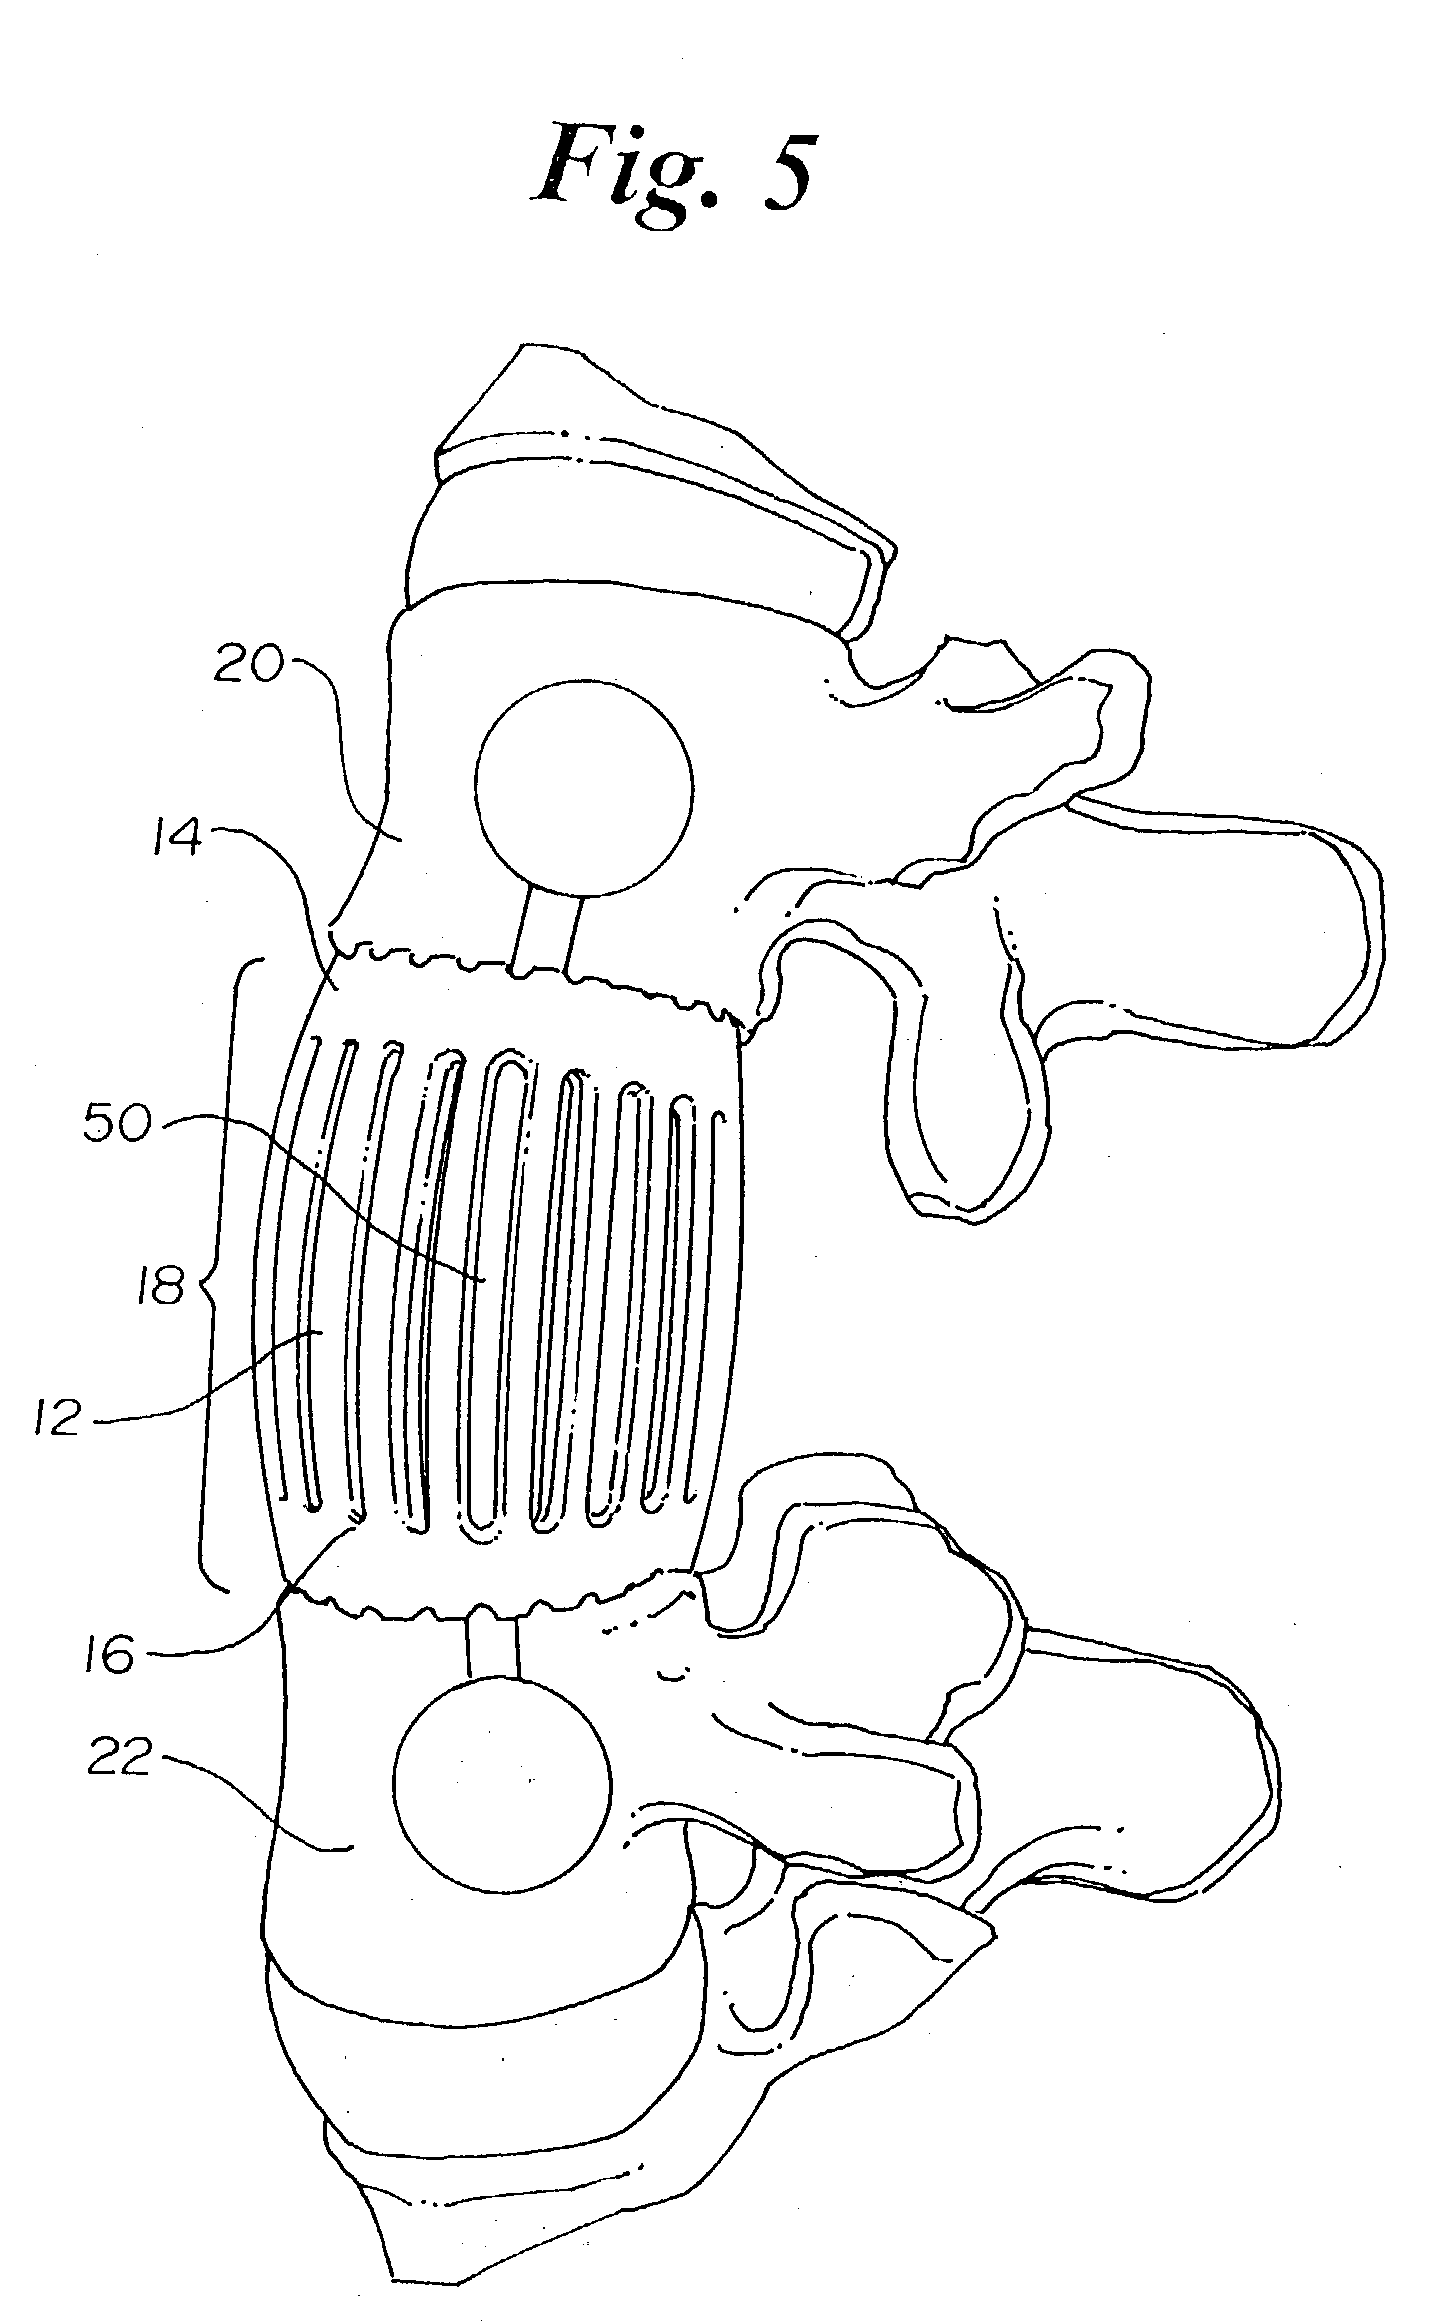 US20030083749 on Connecting Rod Length